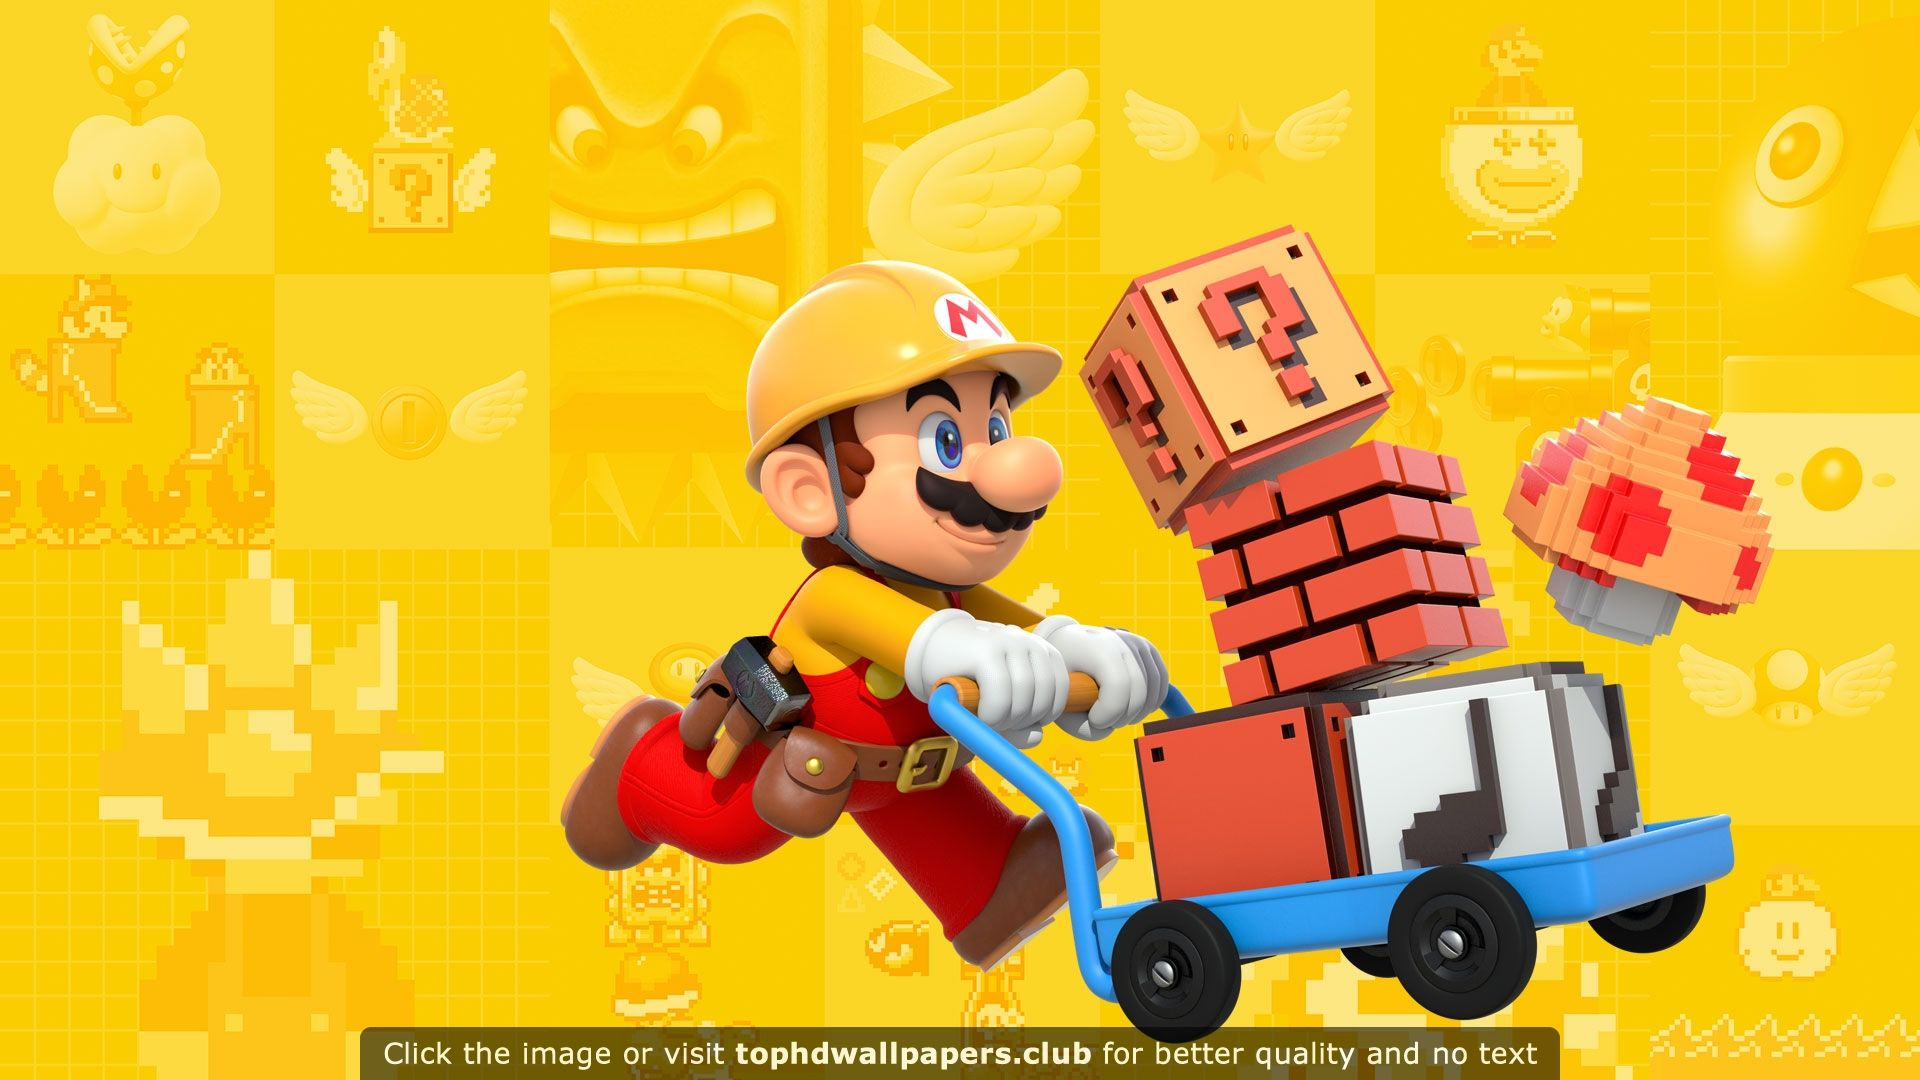 Super Mario Maker 4k Or Hd Wallpaper For Your Pc Mac Or